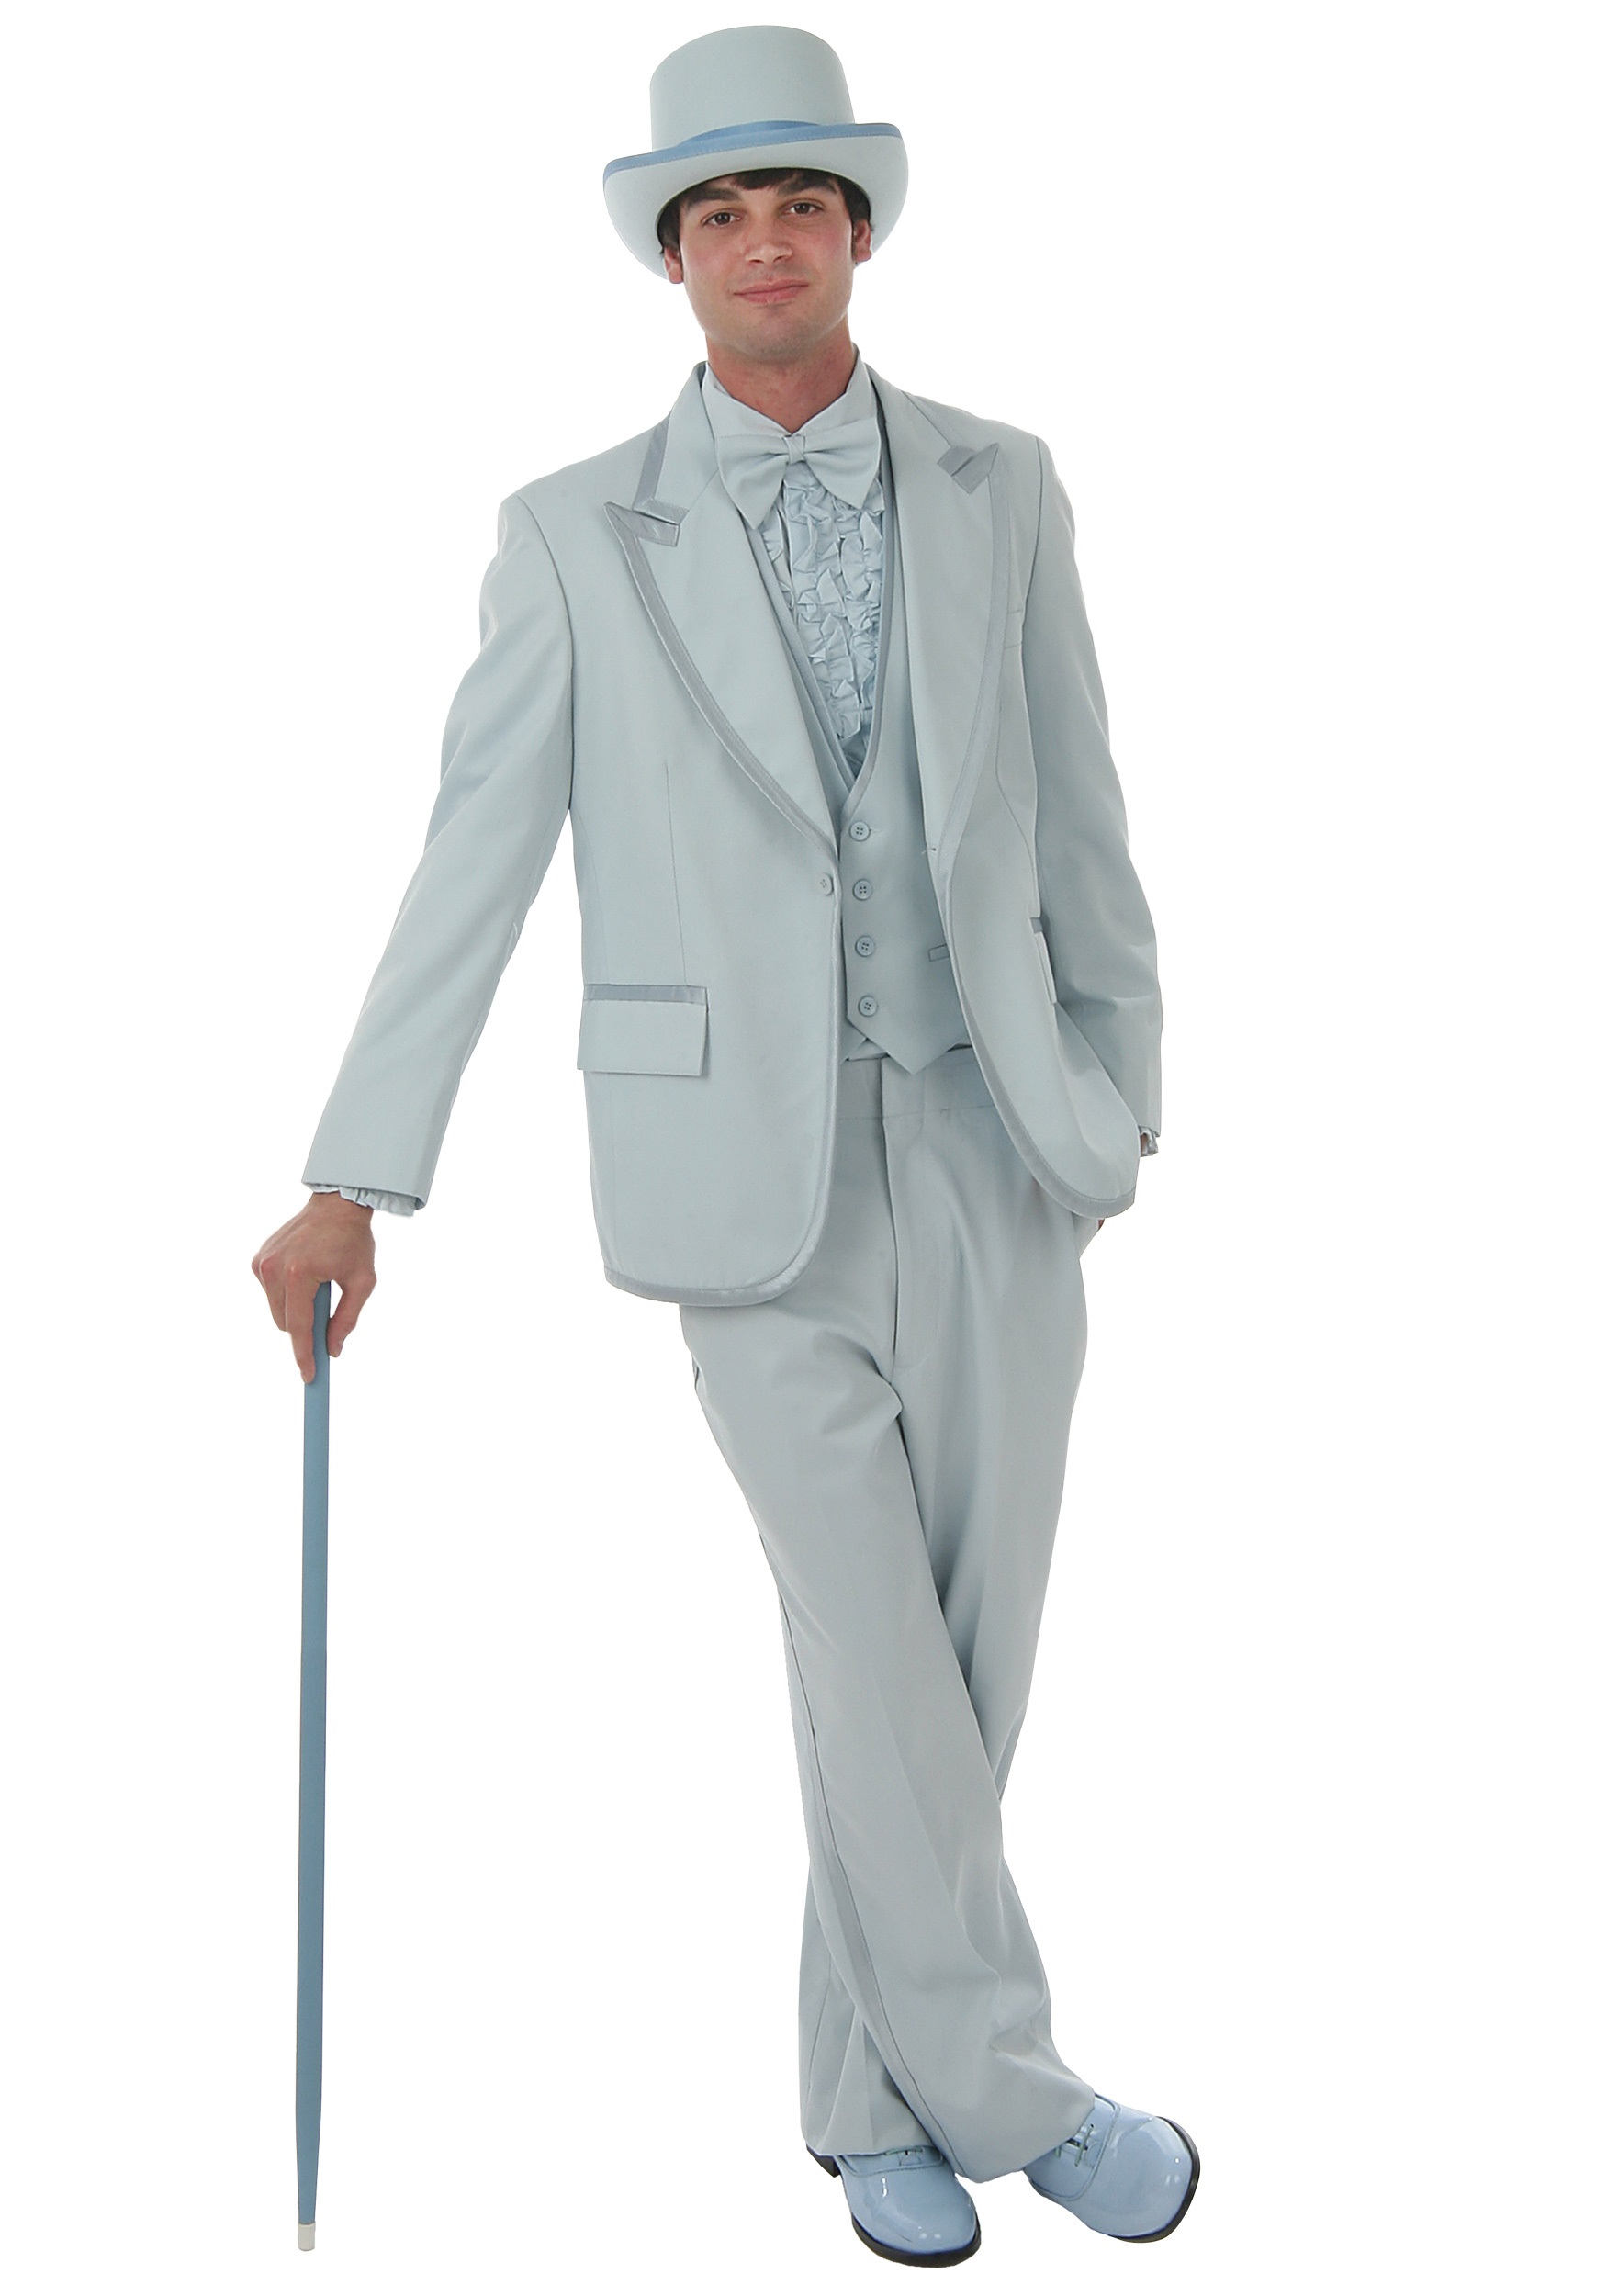 Dumb and Dumber Costumes & Suits - HalloweenCostumes.com